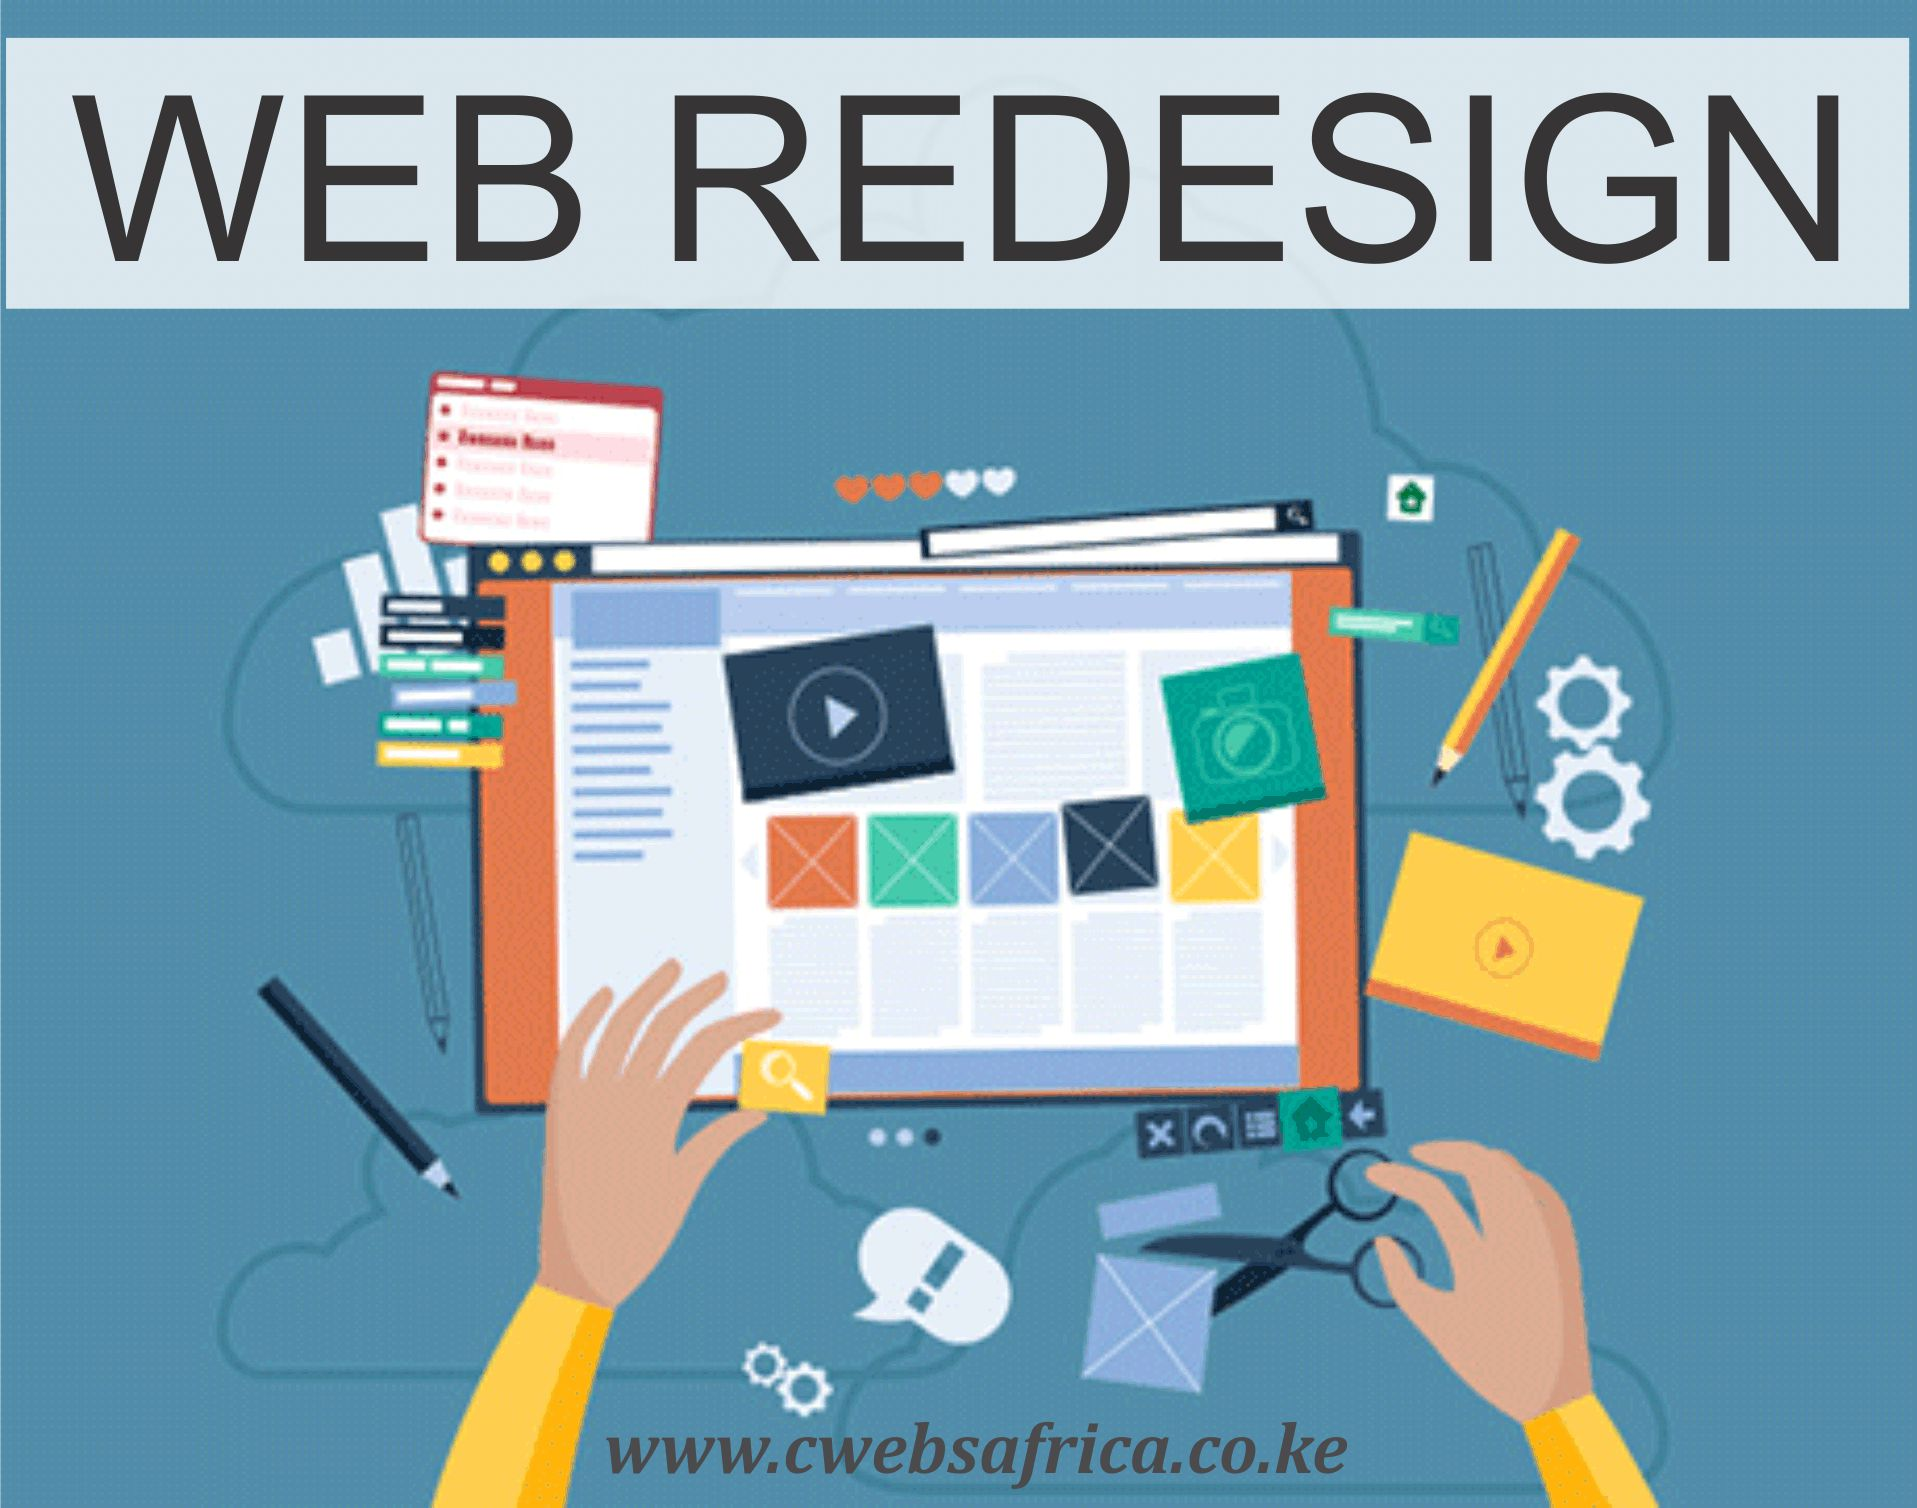 We offer continuous redesign services, enabling iterative evolution of your website